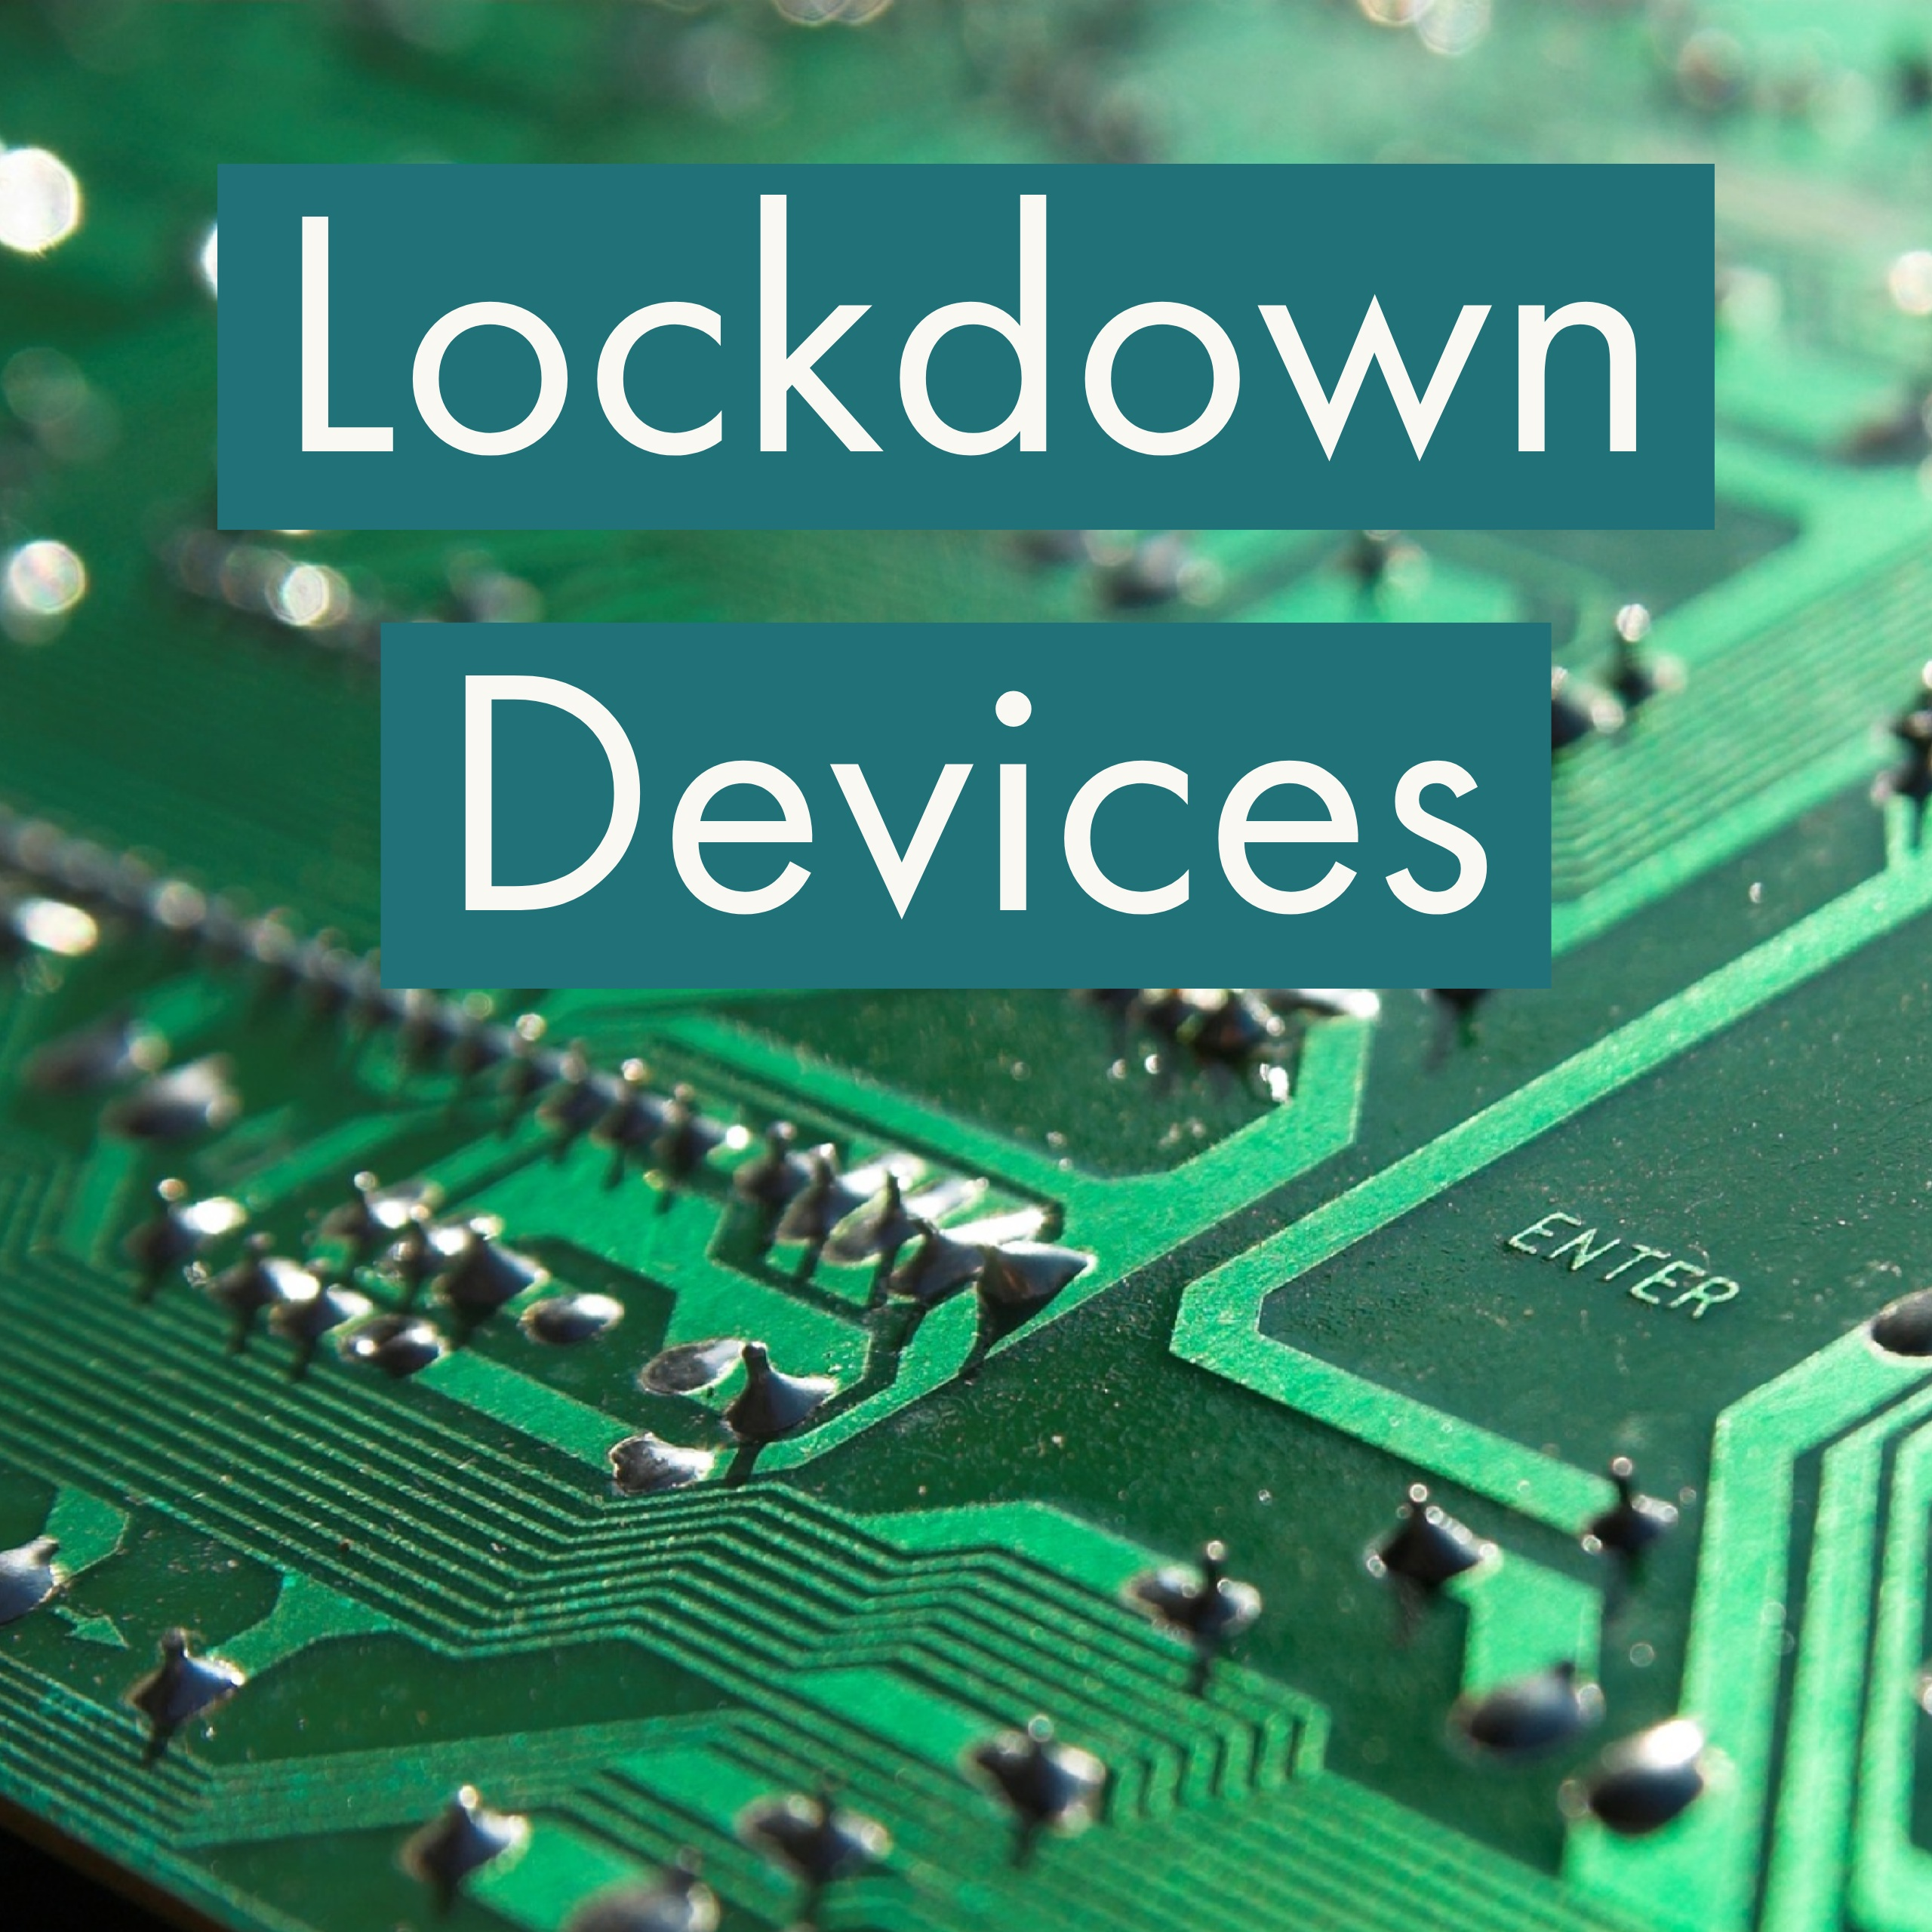 lockdown browsers and secured laptops